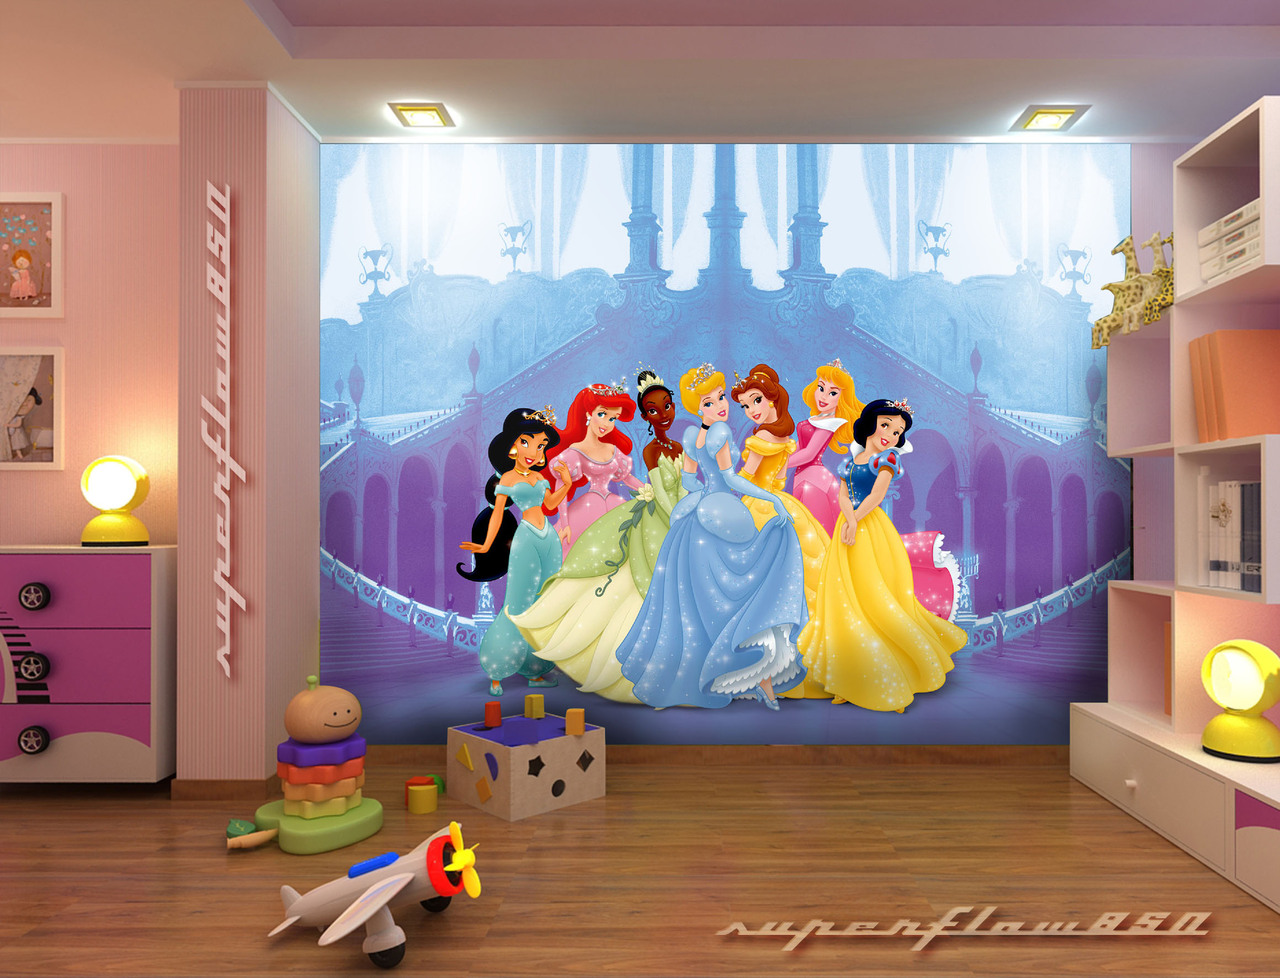 Disney wall murals 2017 grasscloth wallpaper for Children mural wallpaper